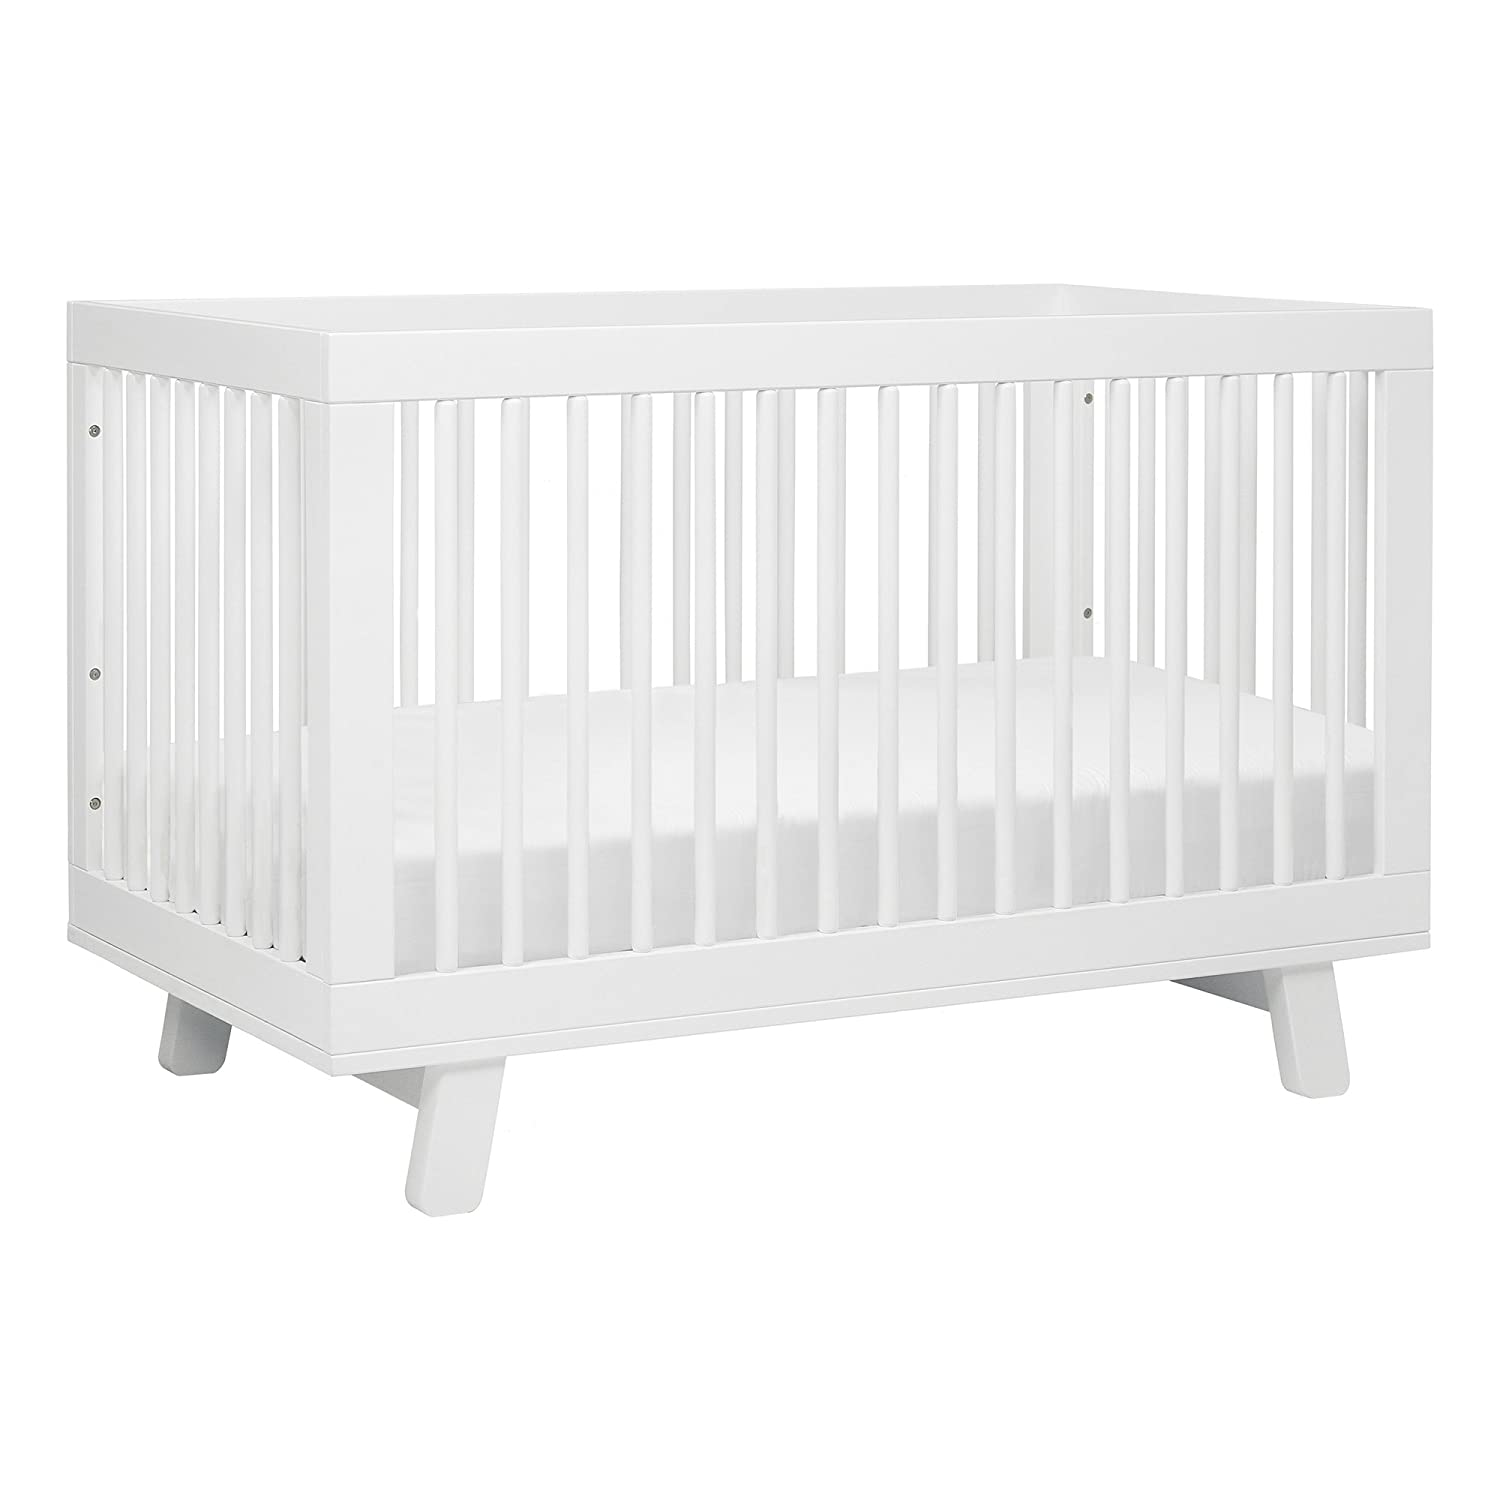 Popular Amazon.com : Babyletto Hudson 3-in-1 Convertible Crib with Toddler  XV32